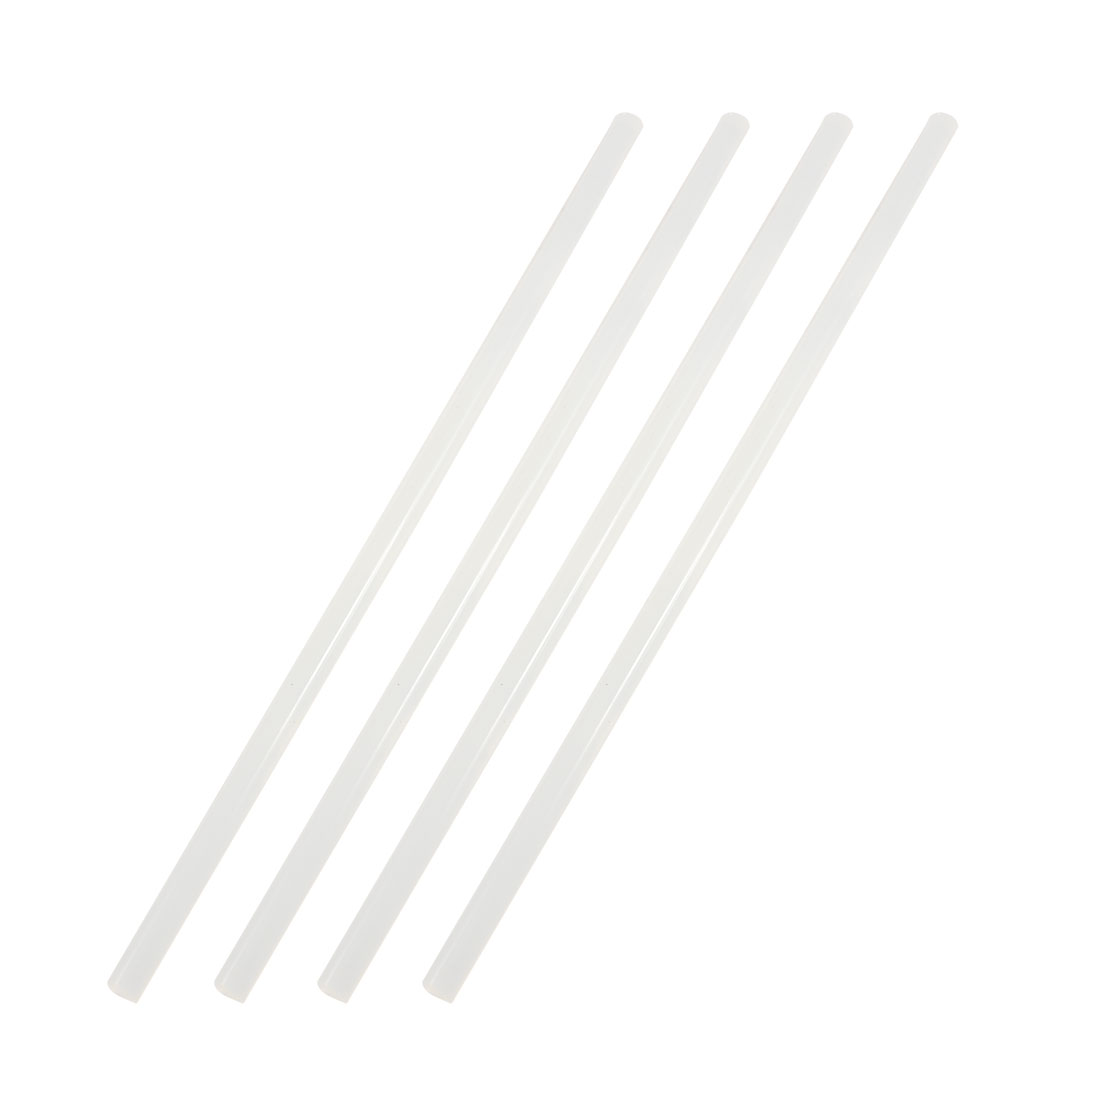 4 Pcs Translucence Hot Melt Glue Adhesive Stick 26cm x 0.7cm